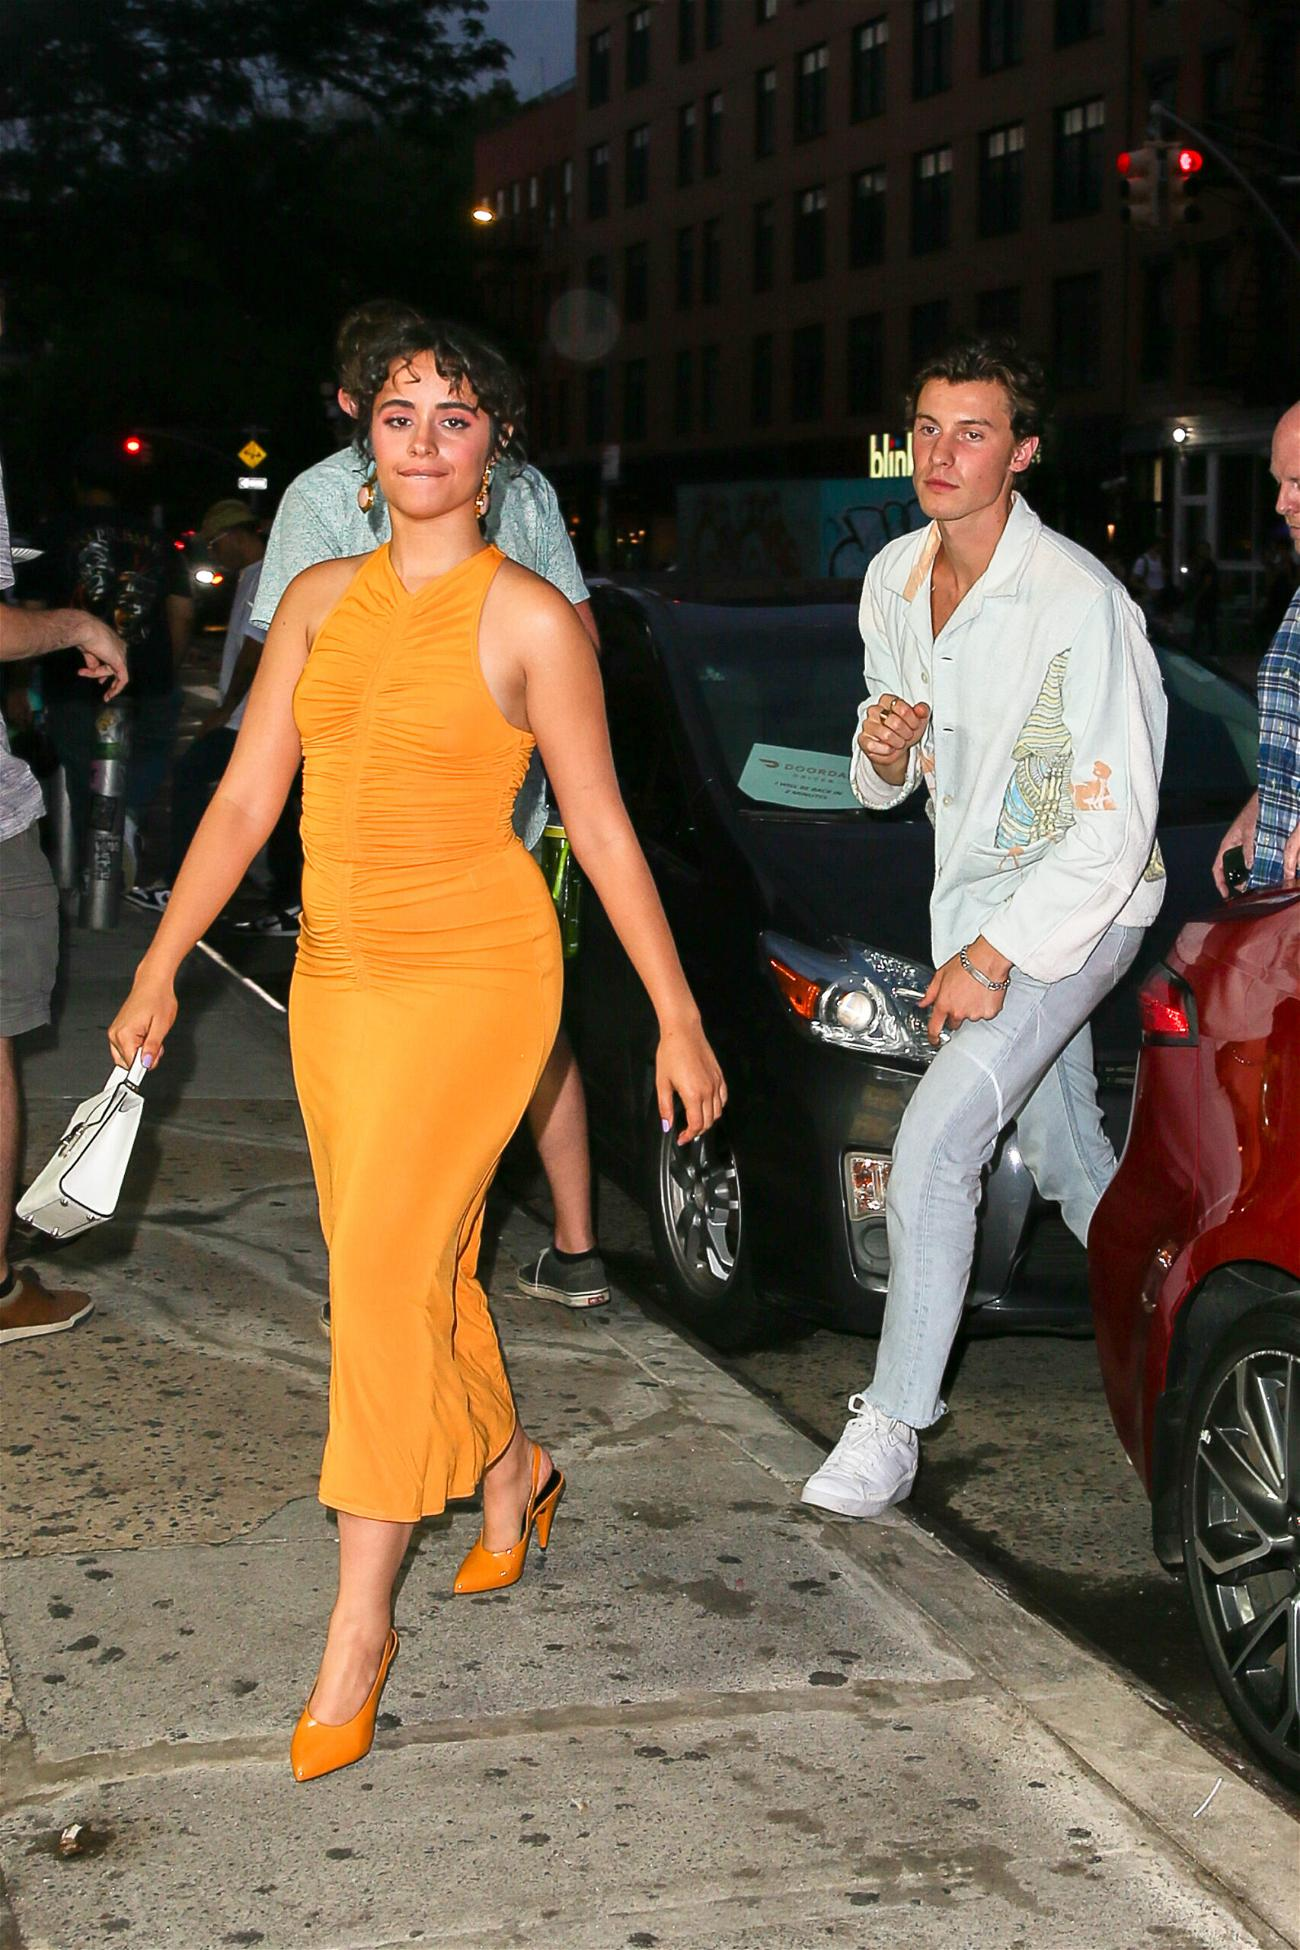 Camila Cabello and Shawn Mendes seen all in love while having a date night in New York City